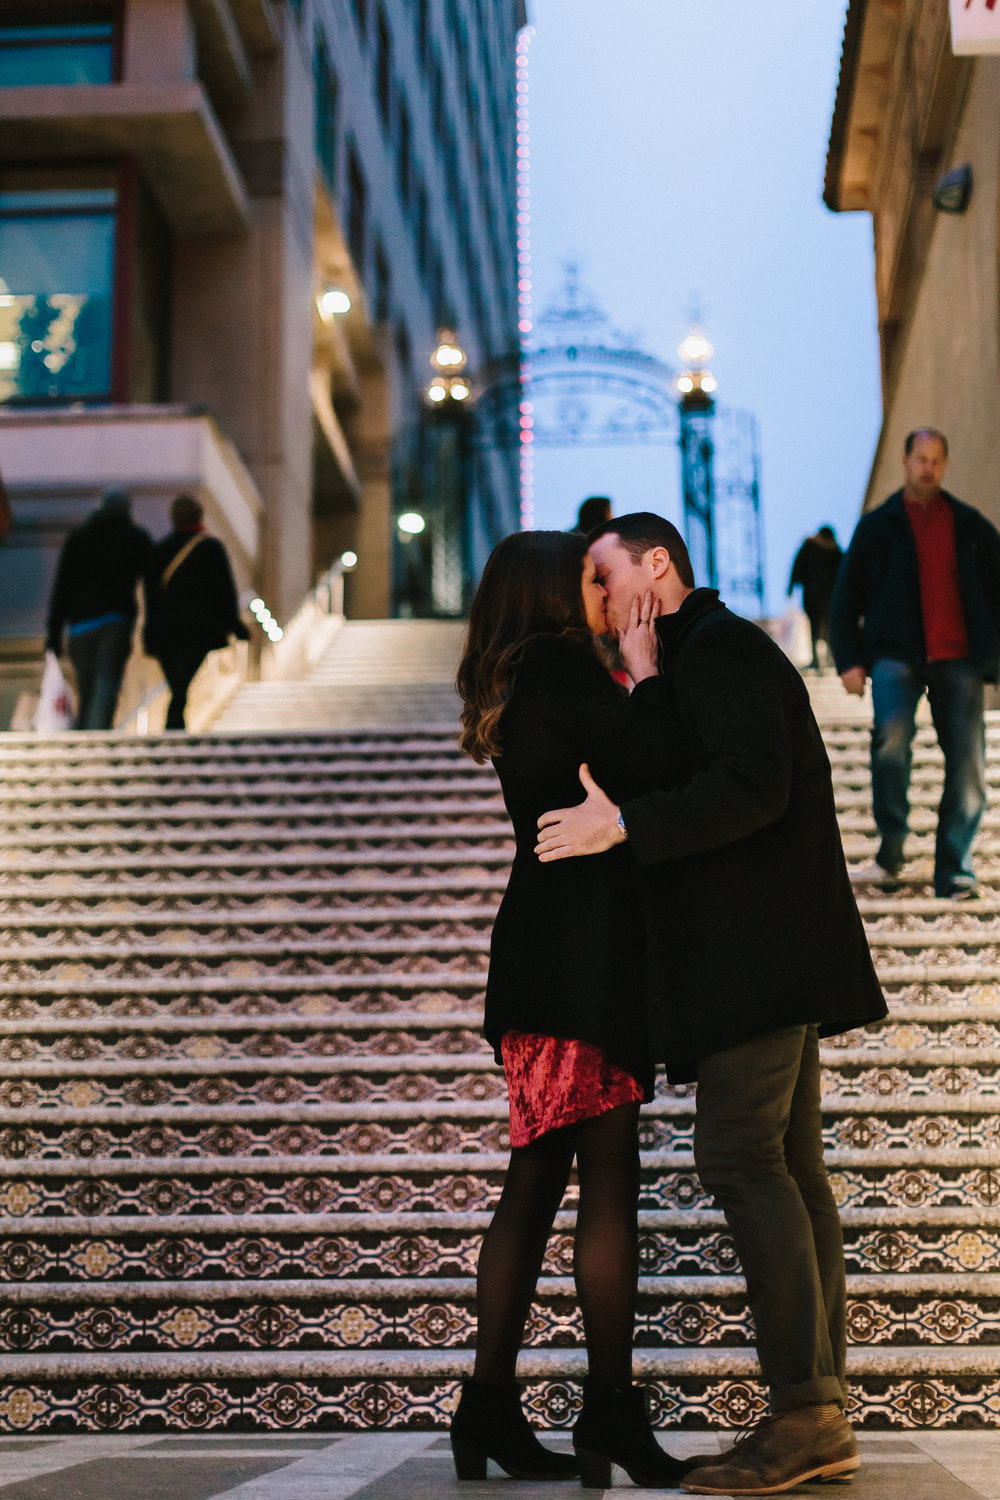 alyssa barletter photography christmas winter wedding proposal plaza lights plaza stairs she said yes-4.jpg